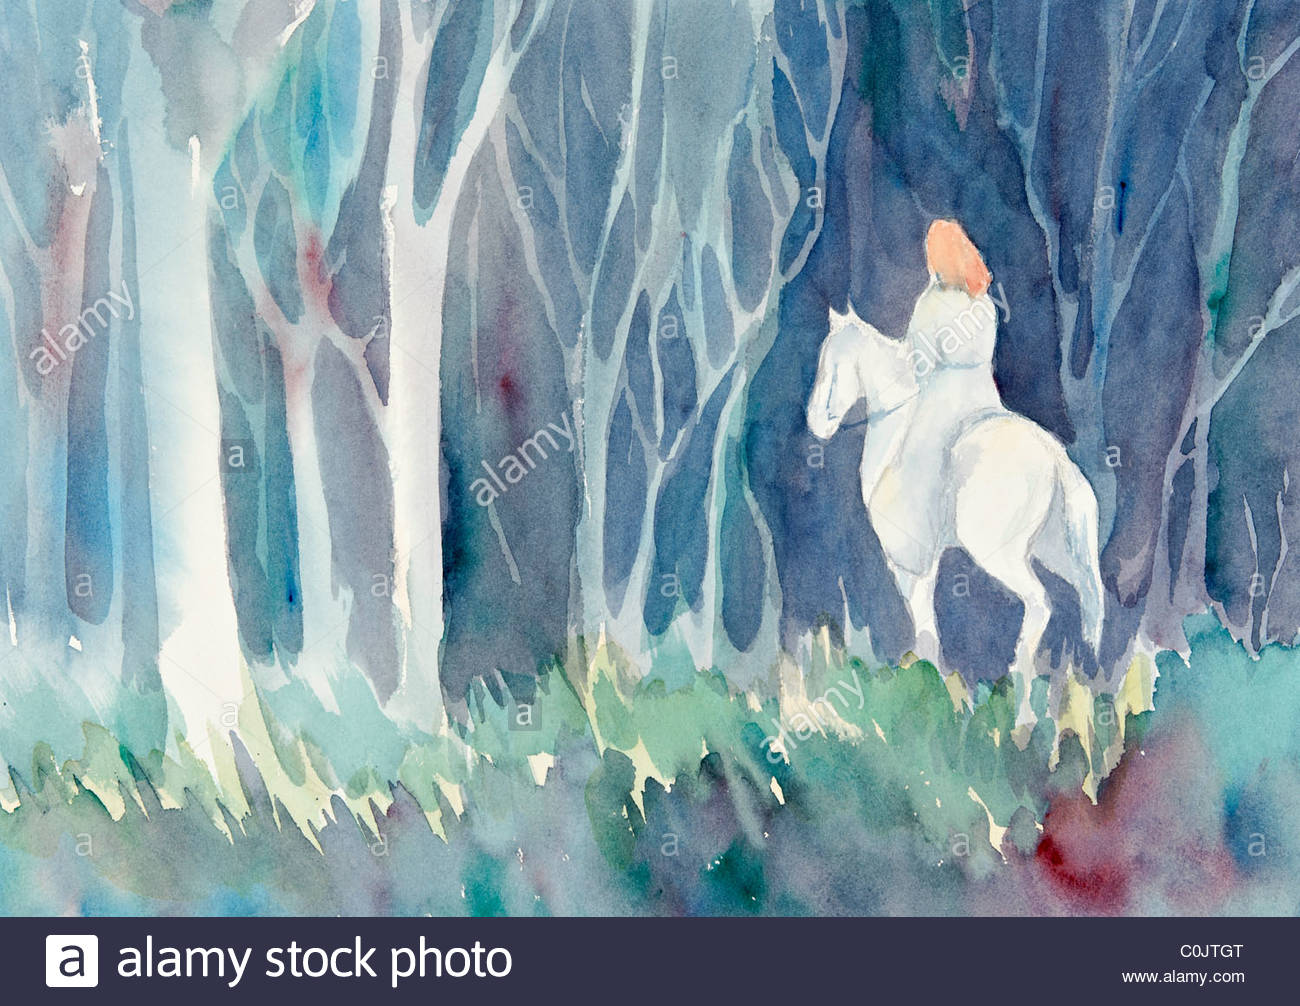 A mysterious woman on horseback rides into a darkened forest. - Stock Image